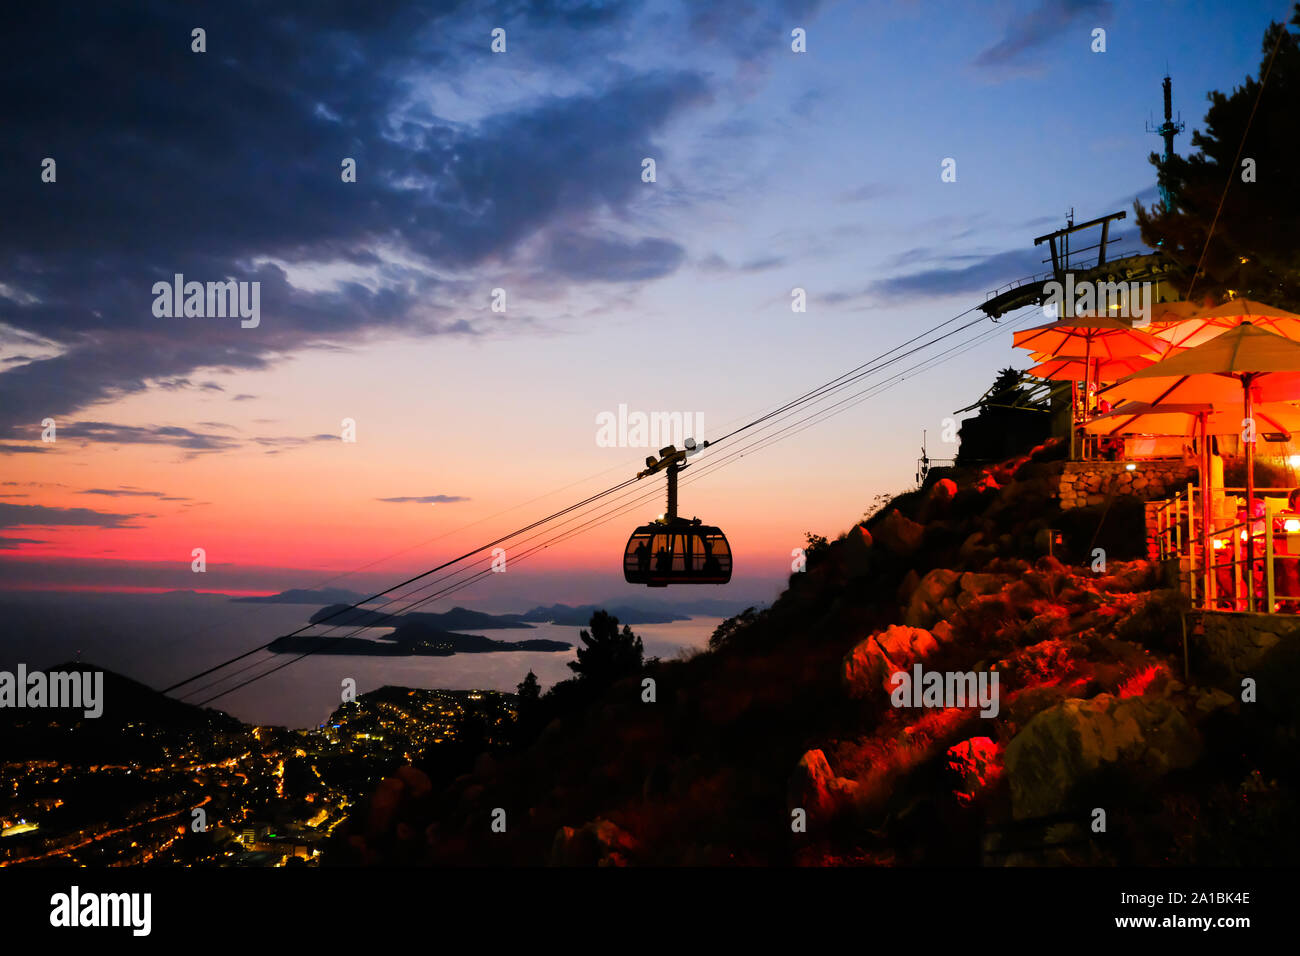 a-cable-car-approaches-the-upper-station